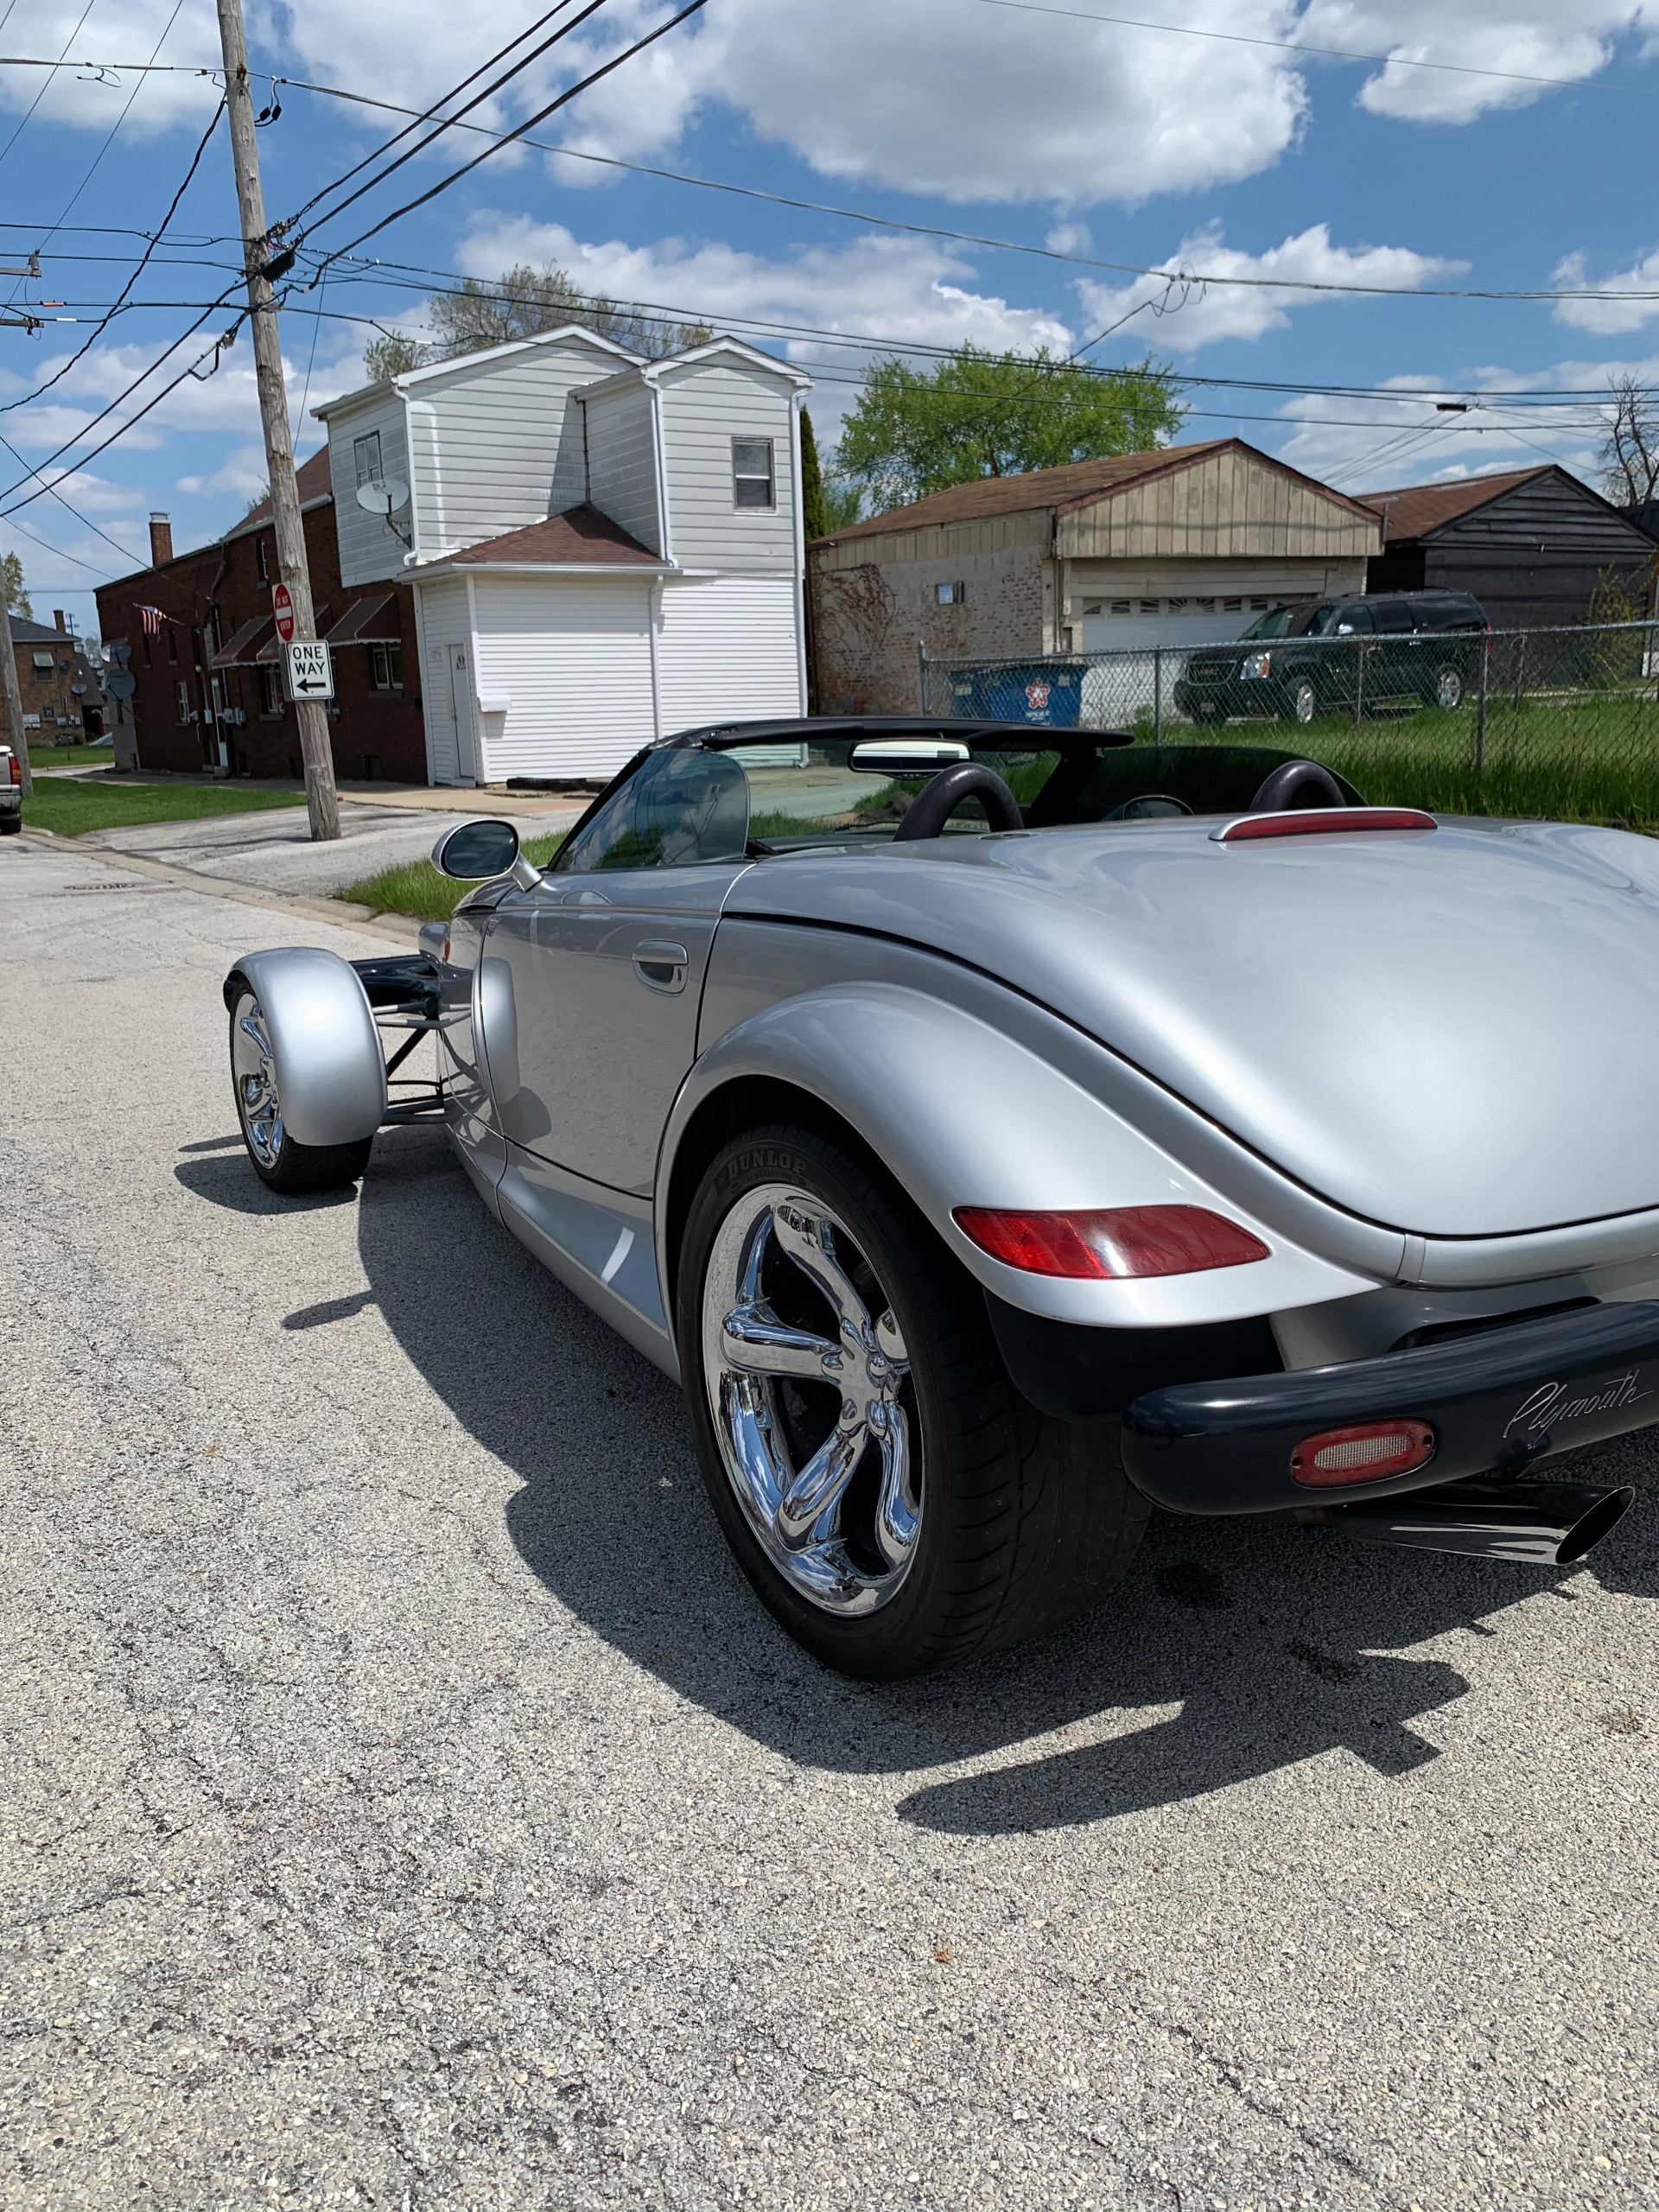 Used 2000 Plymouth Prowler -Silver Bullet | Mundelein, IL